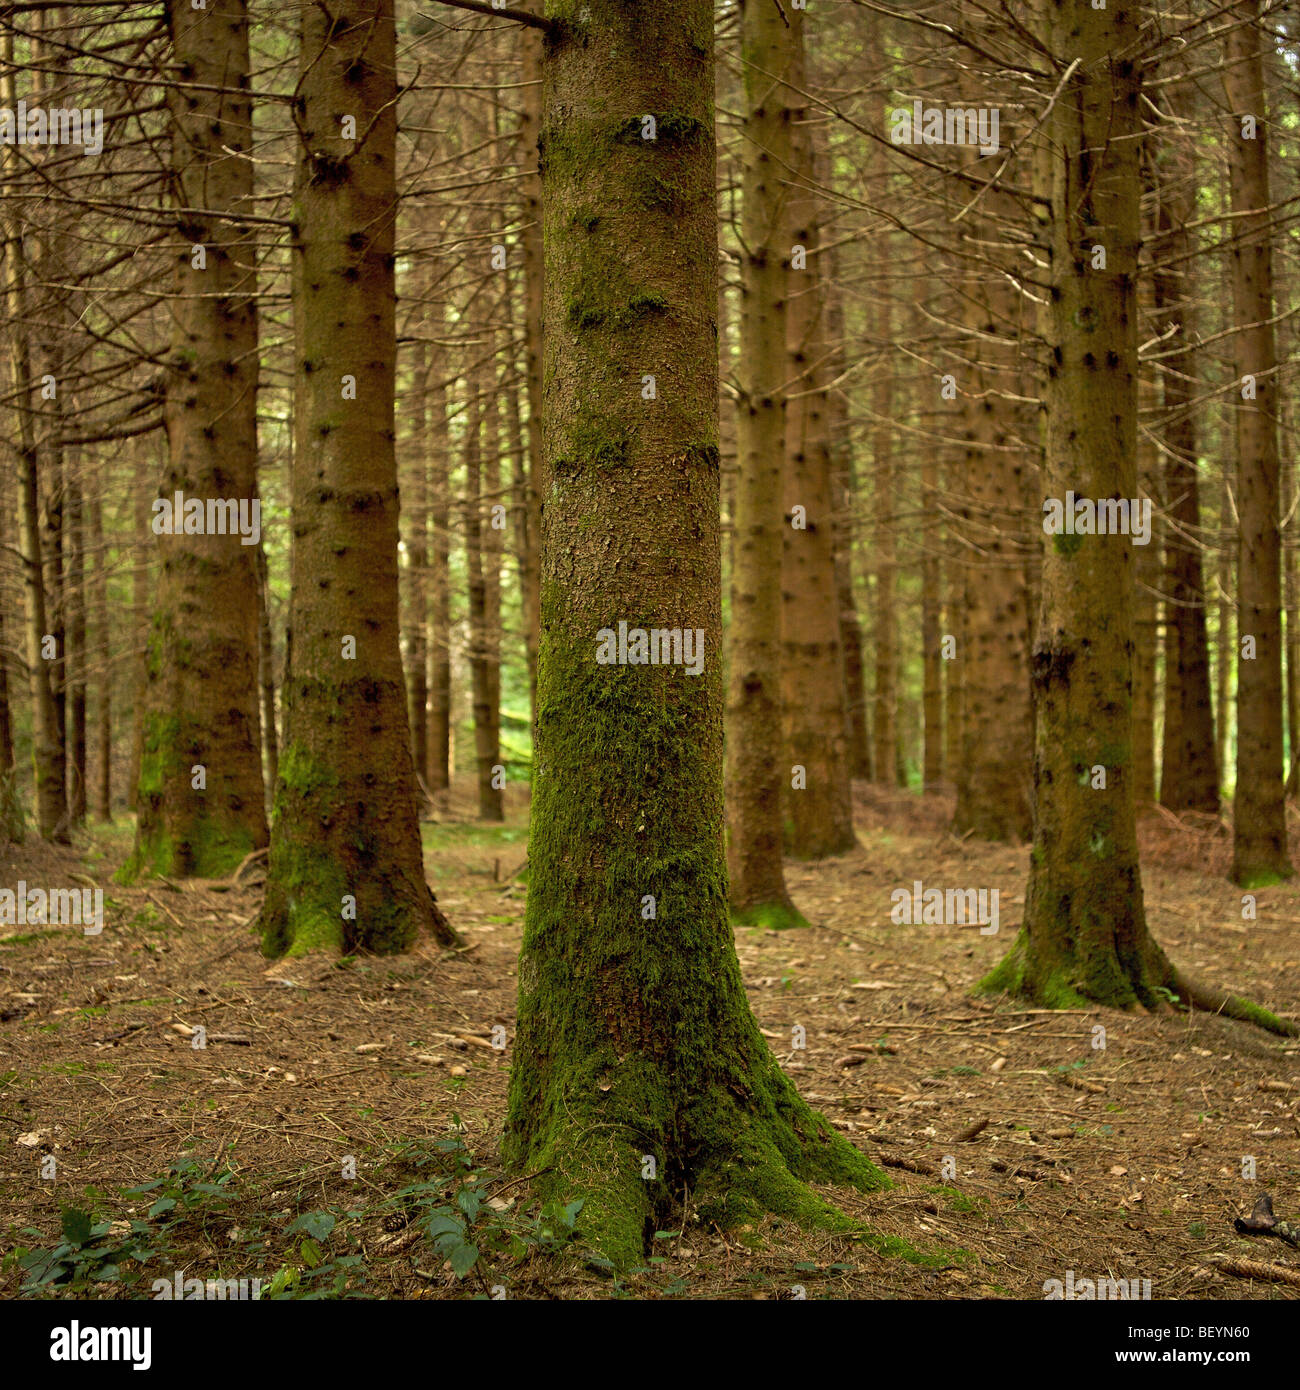 Trees in a forest of fir trees - Stock Image